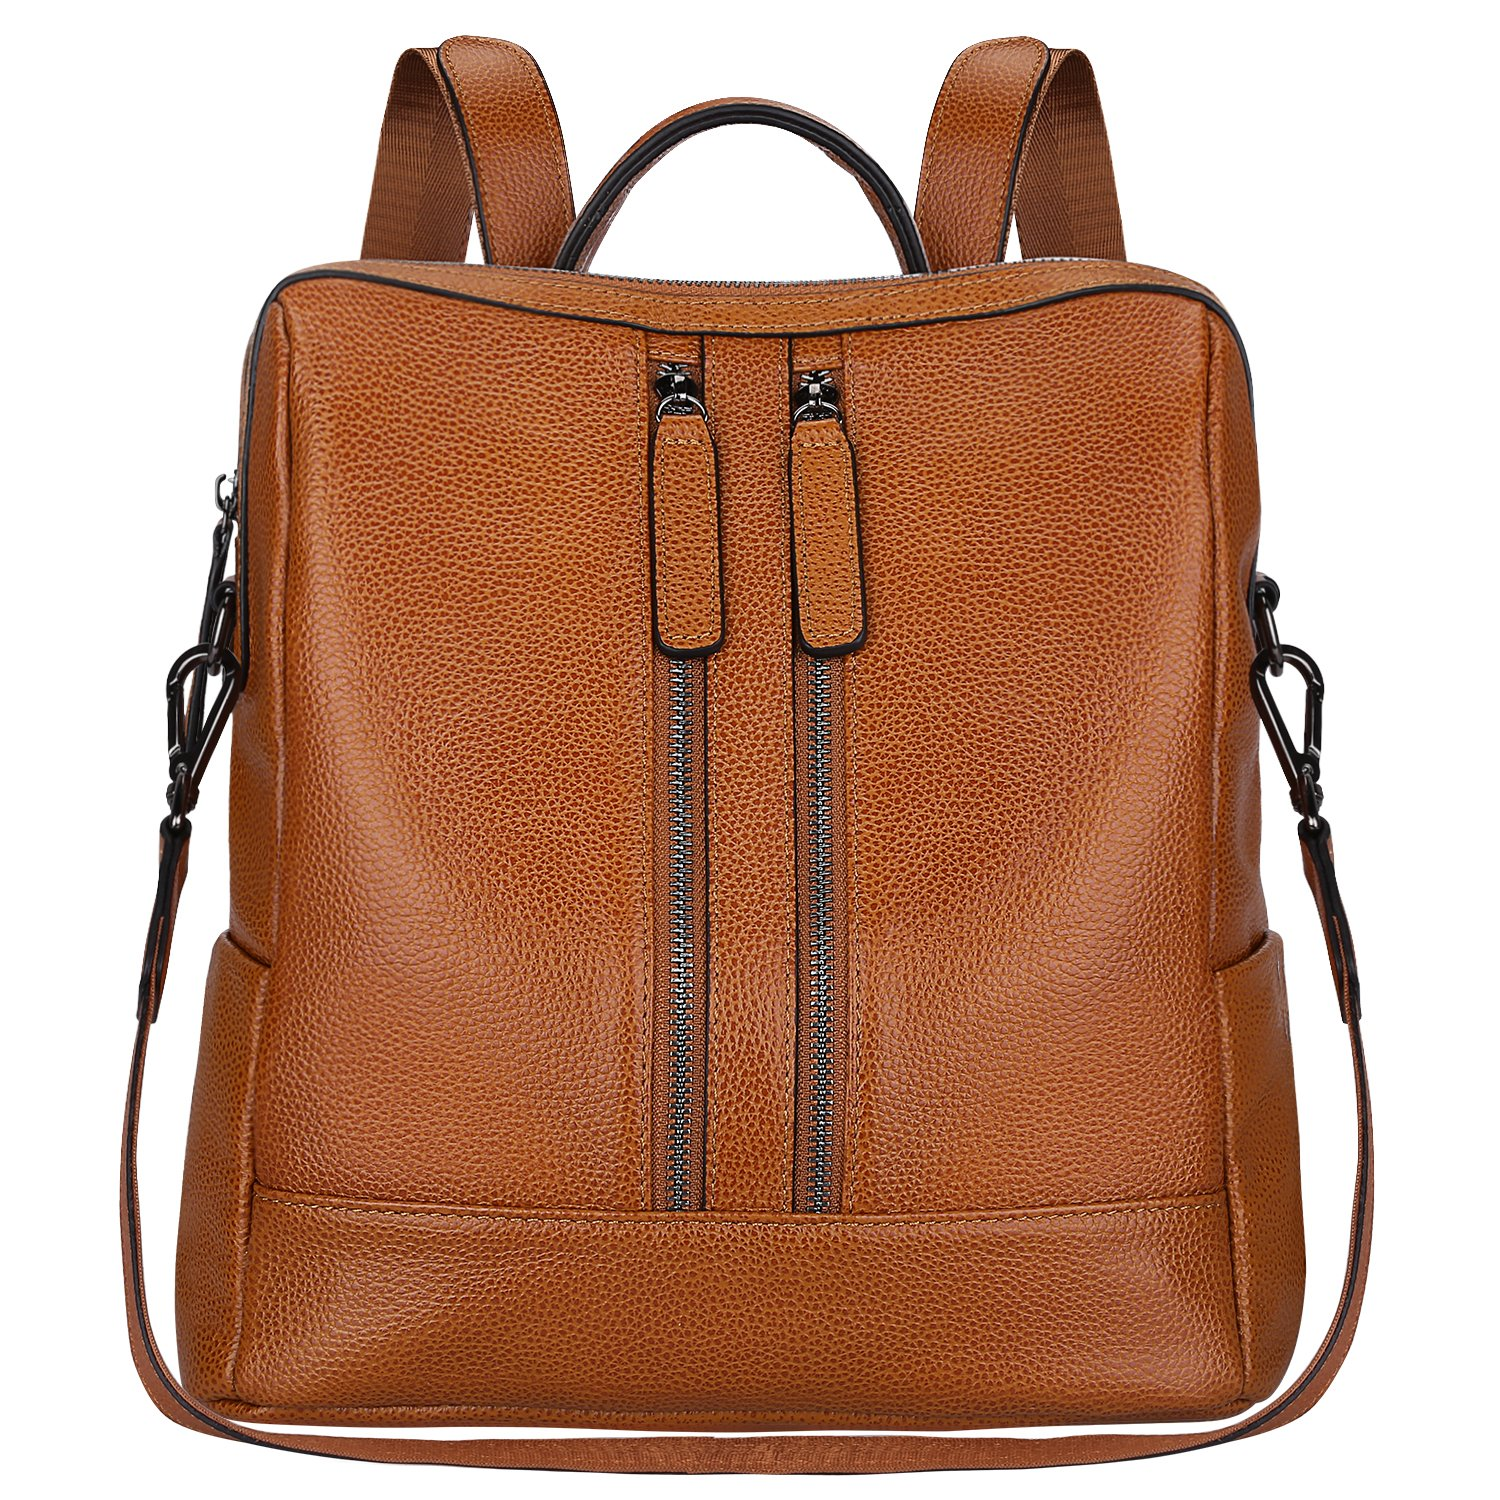 S-ZONE Women Genuine Leather Backpack Casual Shoulder Bag Purse Medium (Brown) by S-ZONE